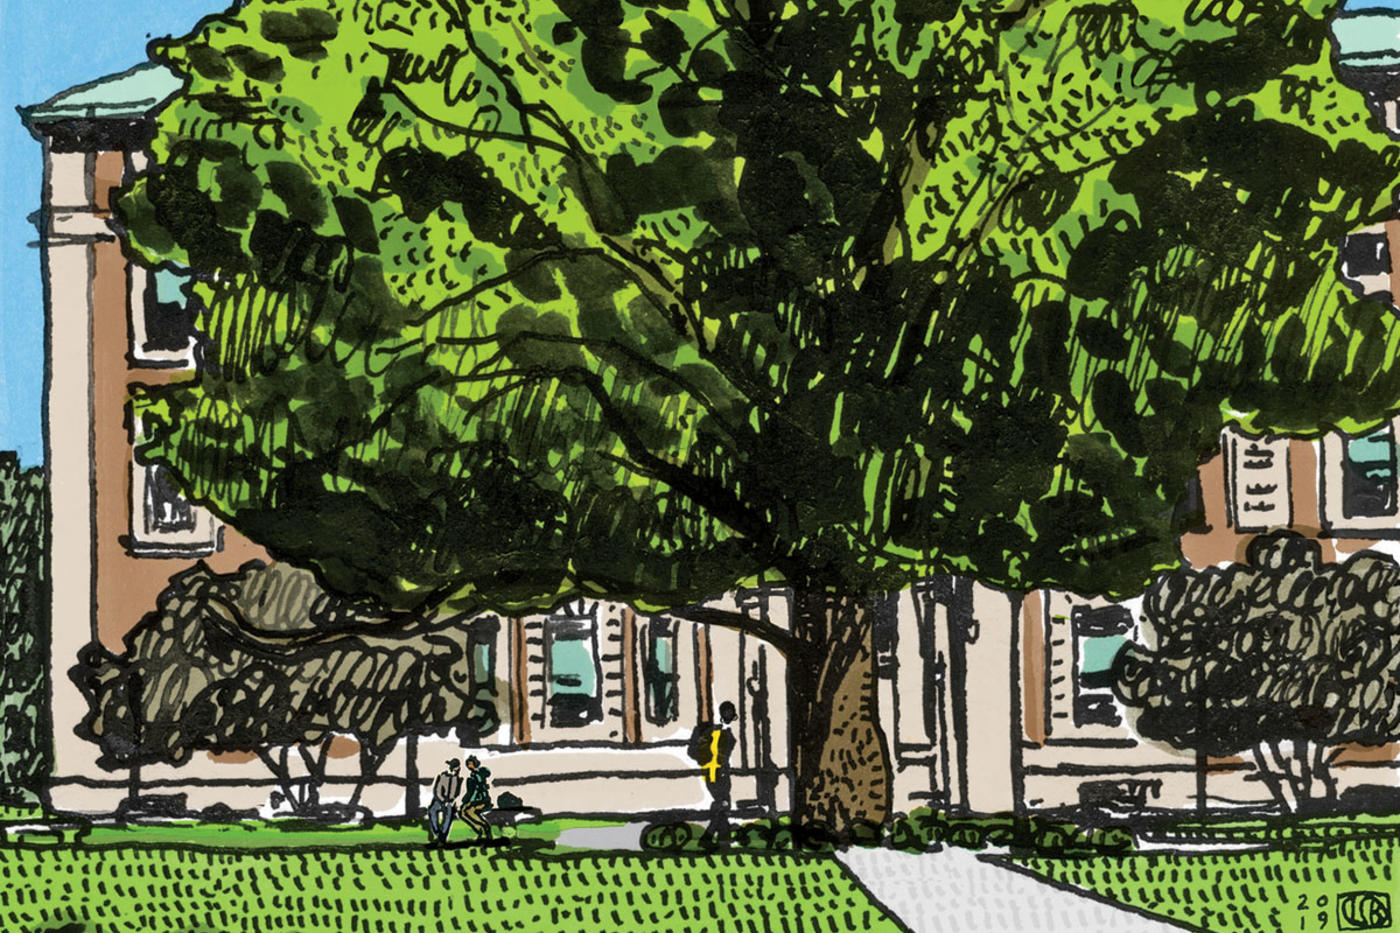 Illustration by Lauren Simkin Berke of the sycamore tree outside Columbia University's Mathematics building